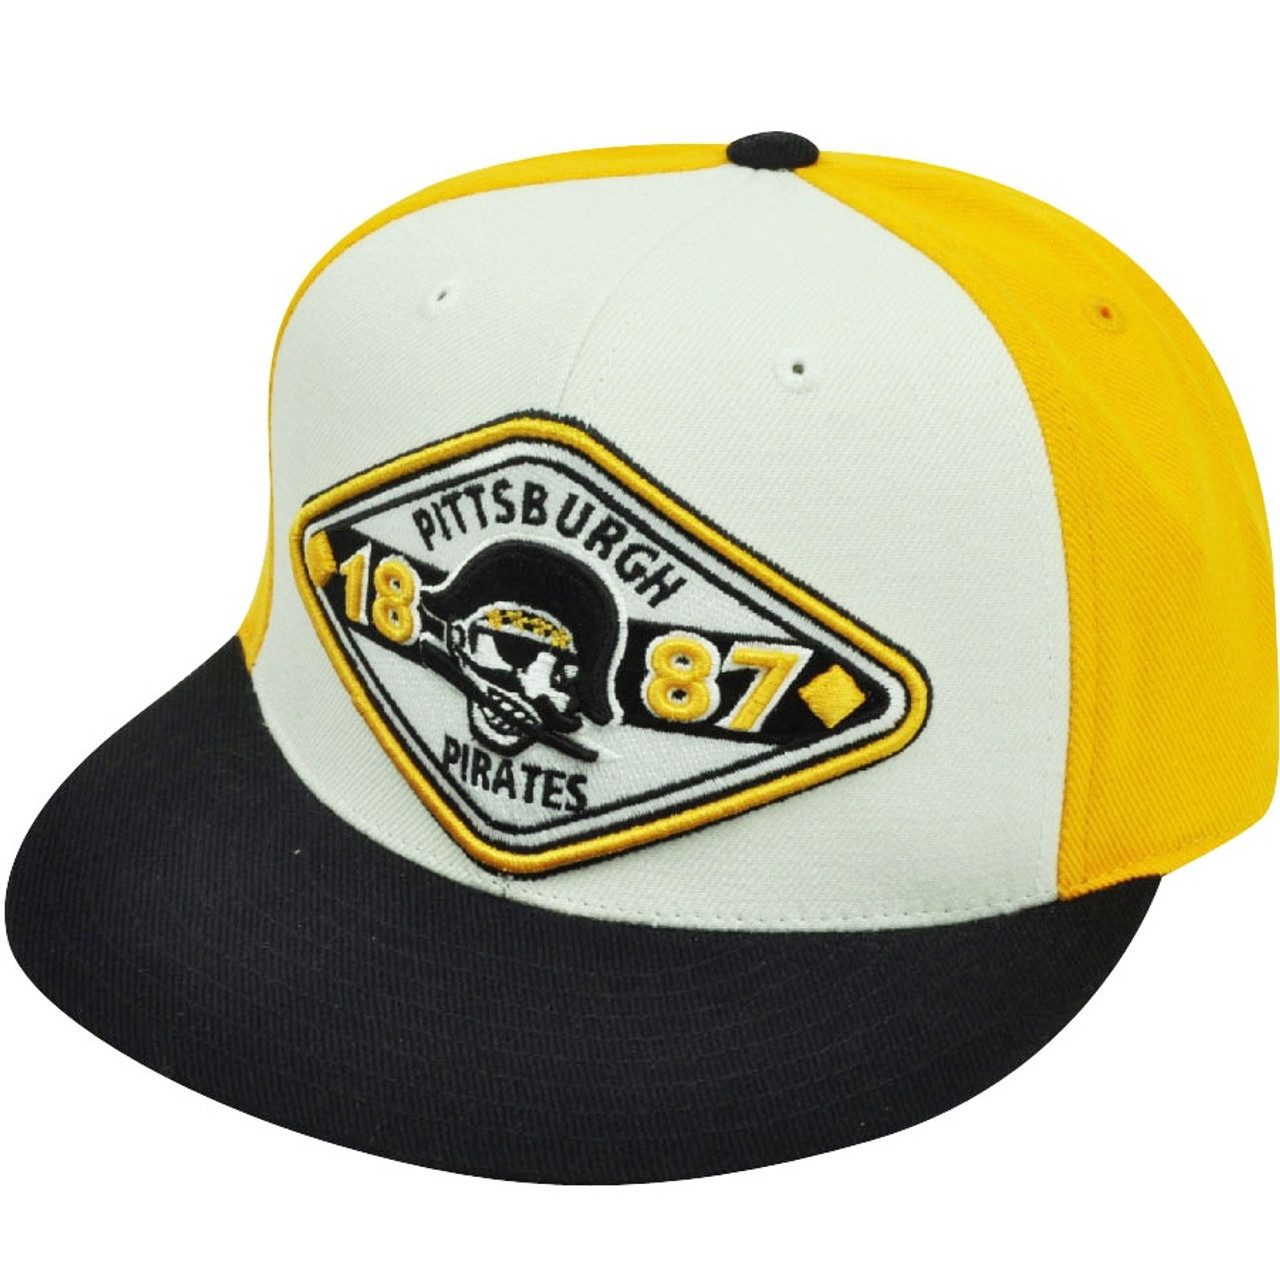 new concept d40bb 71284 MLB American Needle Pittsburgh Pirates Fitted Vintage Backtrax 7 1 4 Hat Cap  - Cap Store Online.com